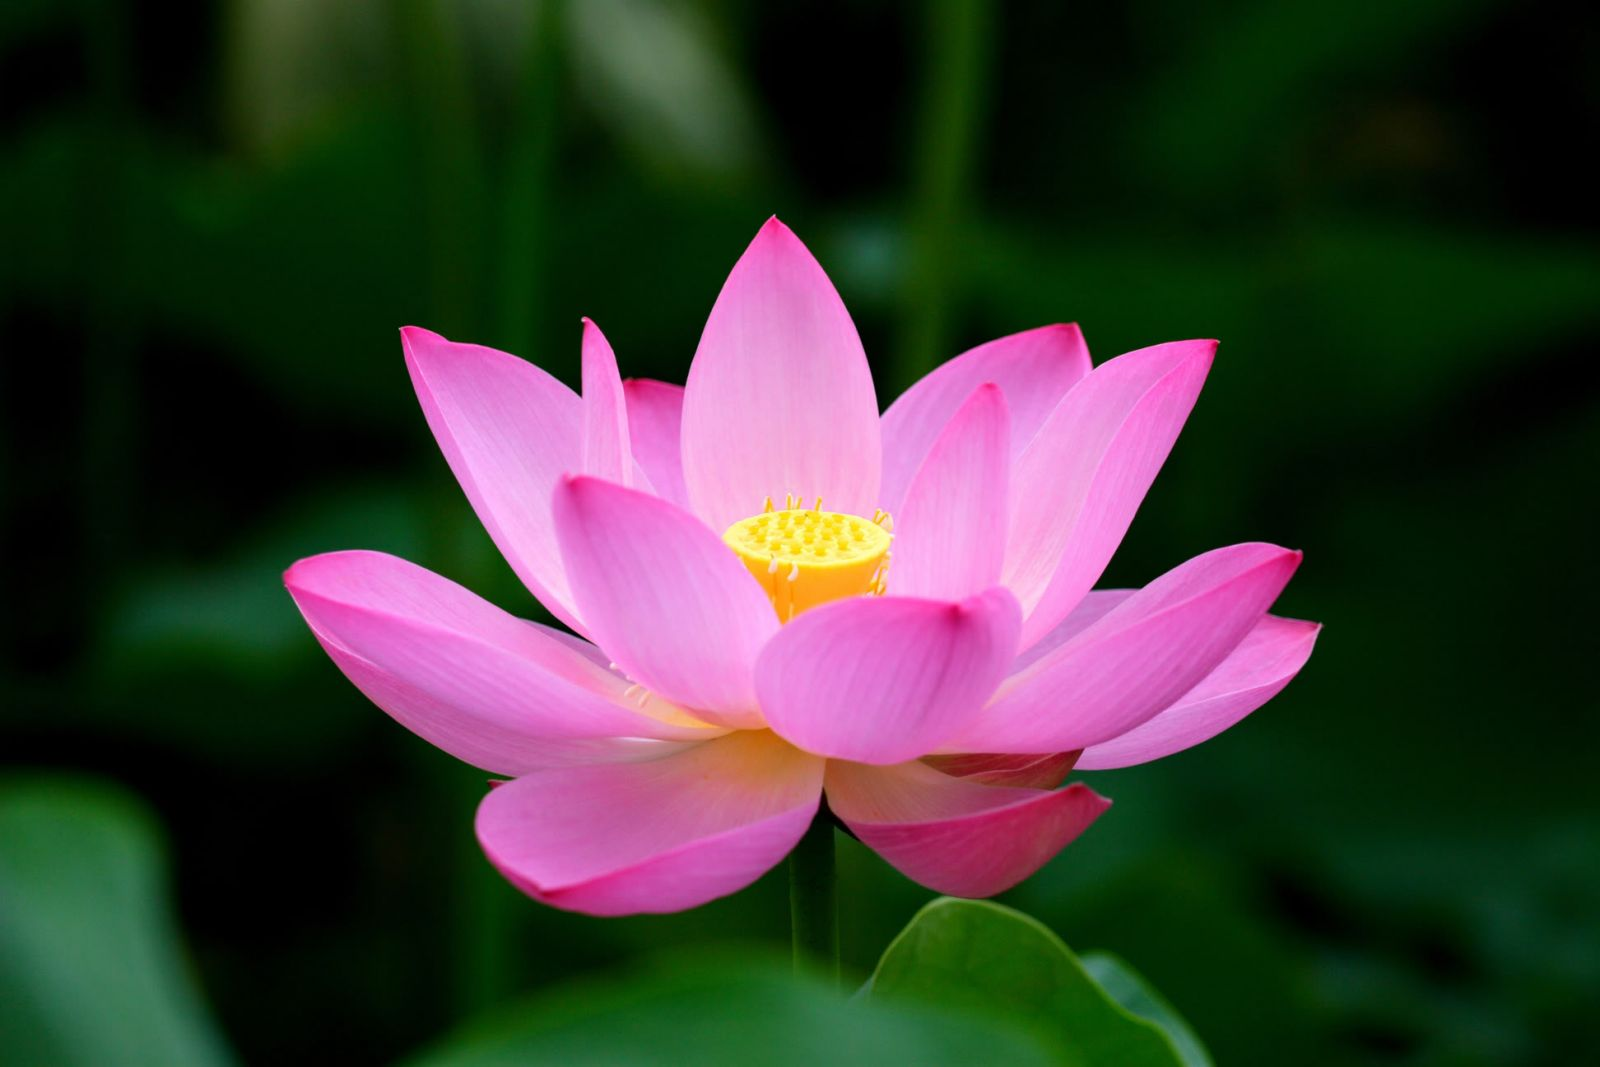 LOTUS FLOWER IN VIETNAMESE MENTALITY